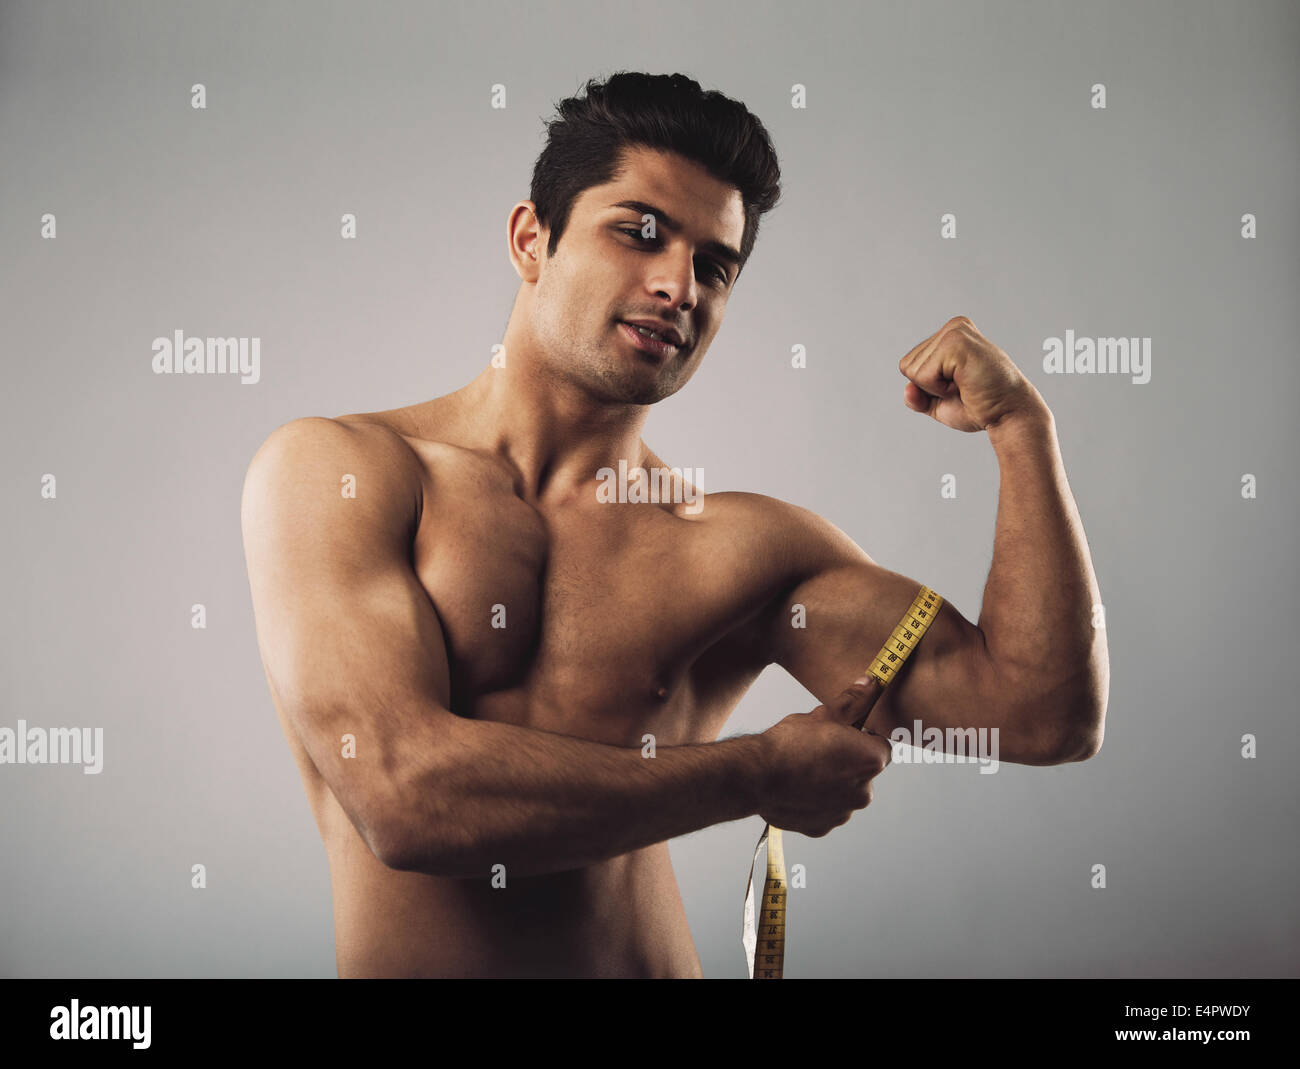 Fit hispanic male model measuring his body. Masculine young male measuring biceps with tape measure on grey background. - Stock Image